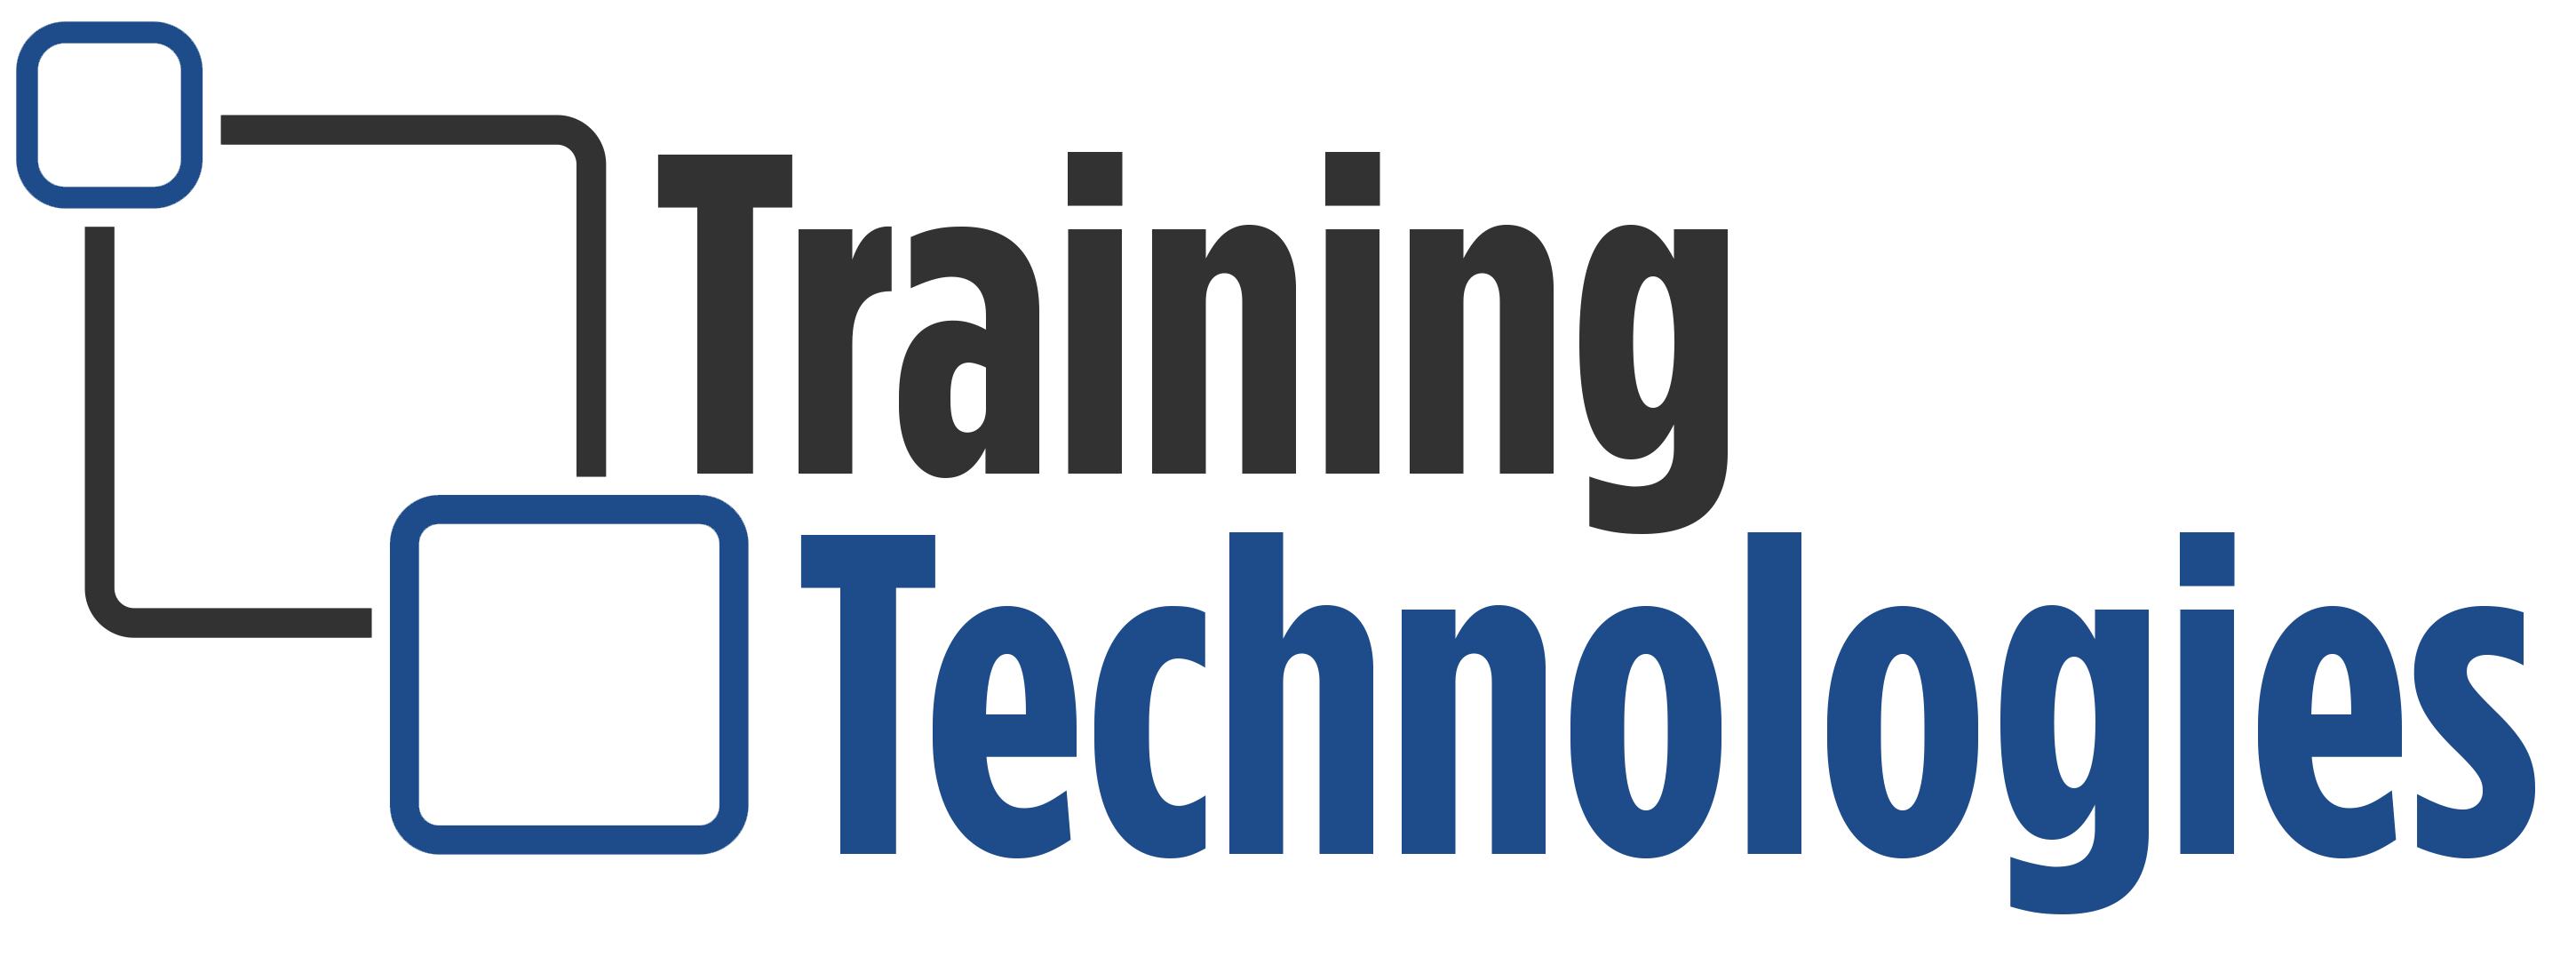 Training Technologies